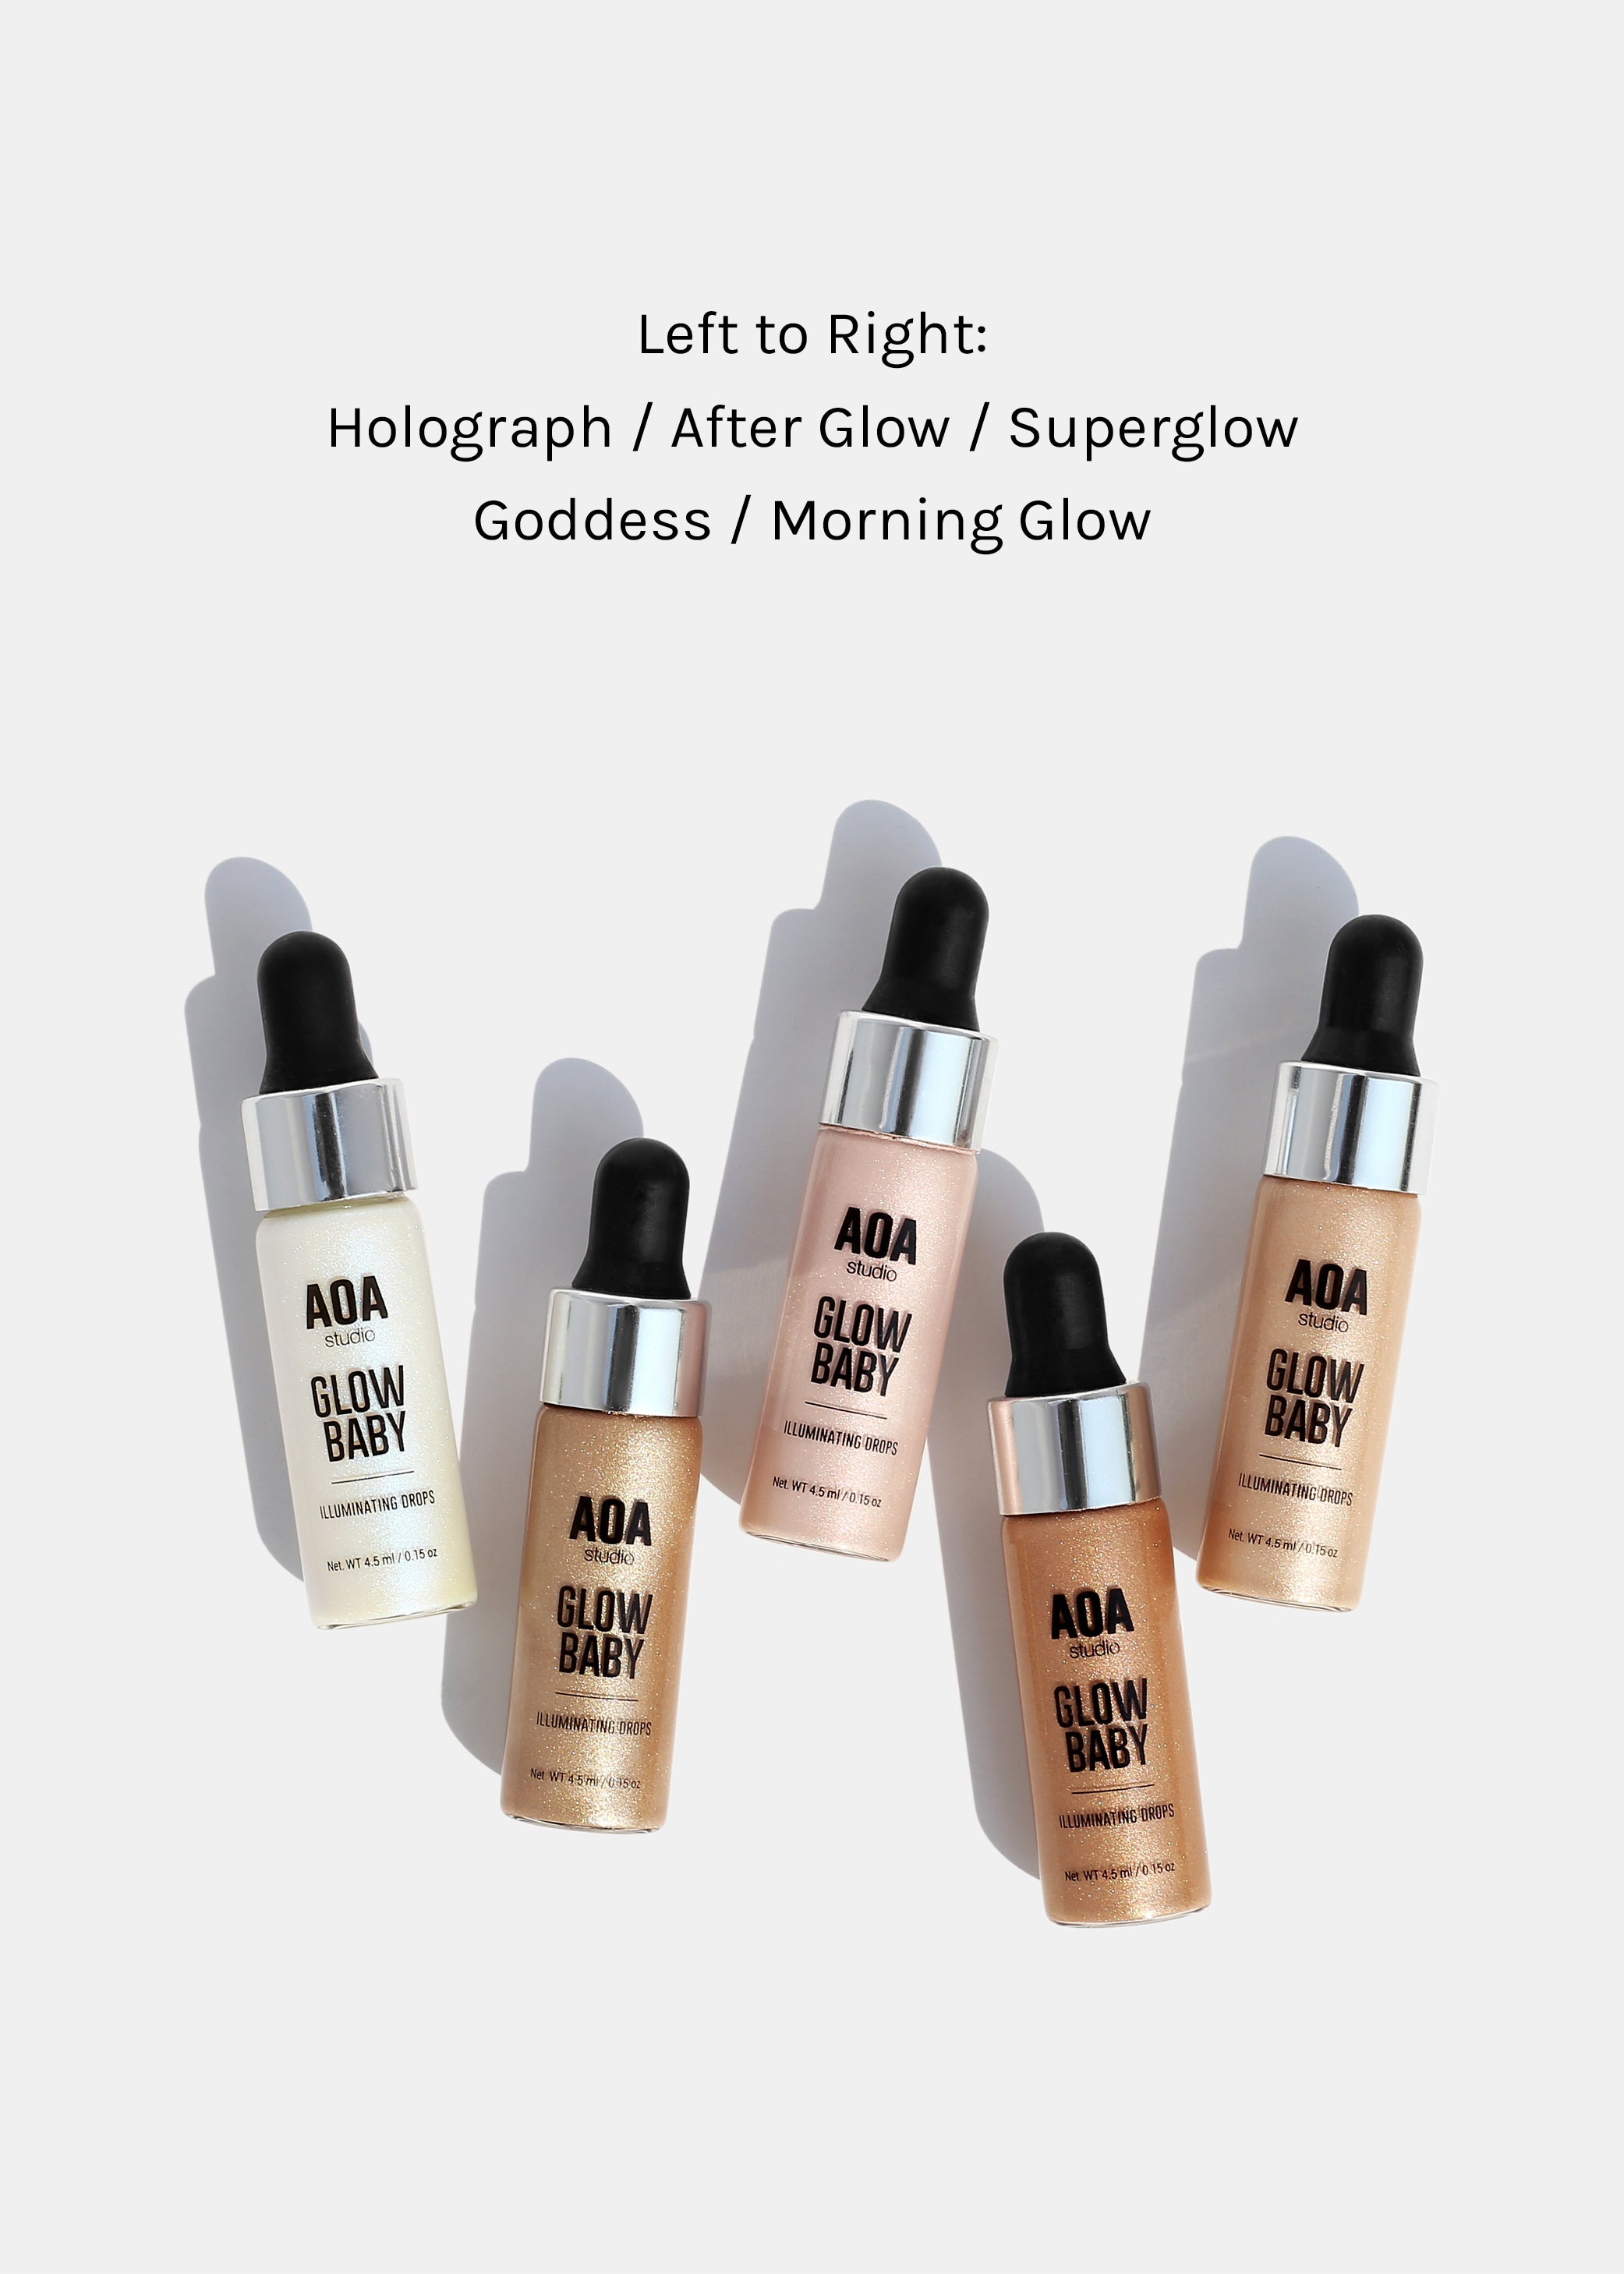 🐶Paw Paw:Glow Baby Highlighter- After Glow